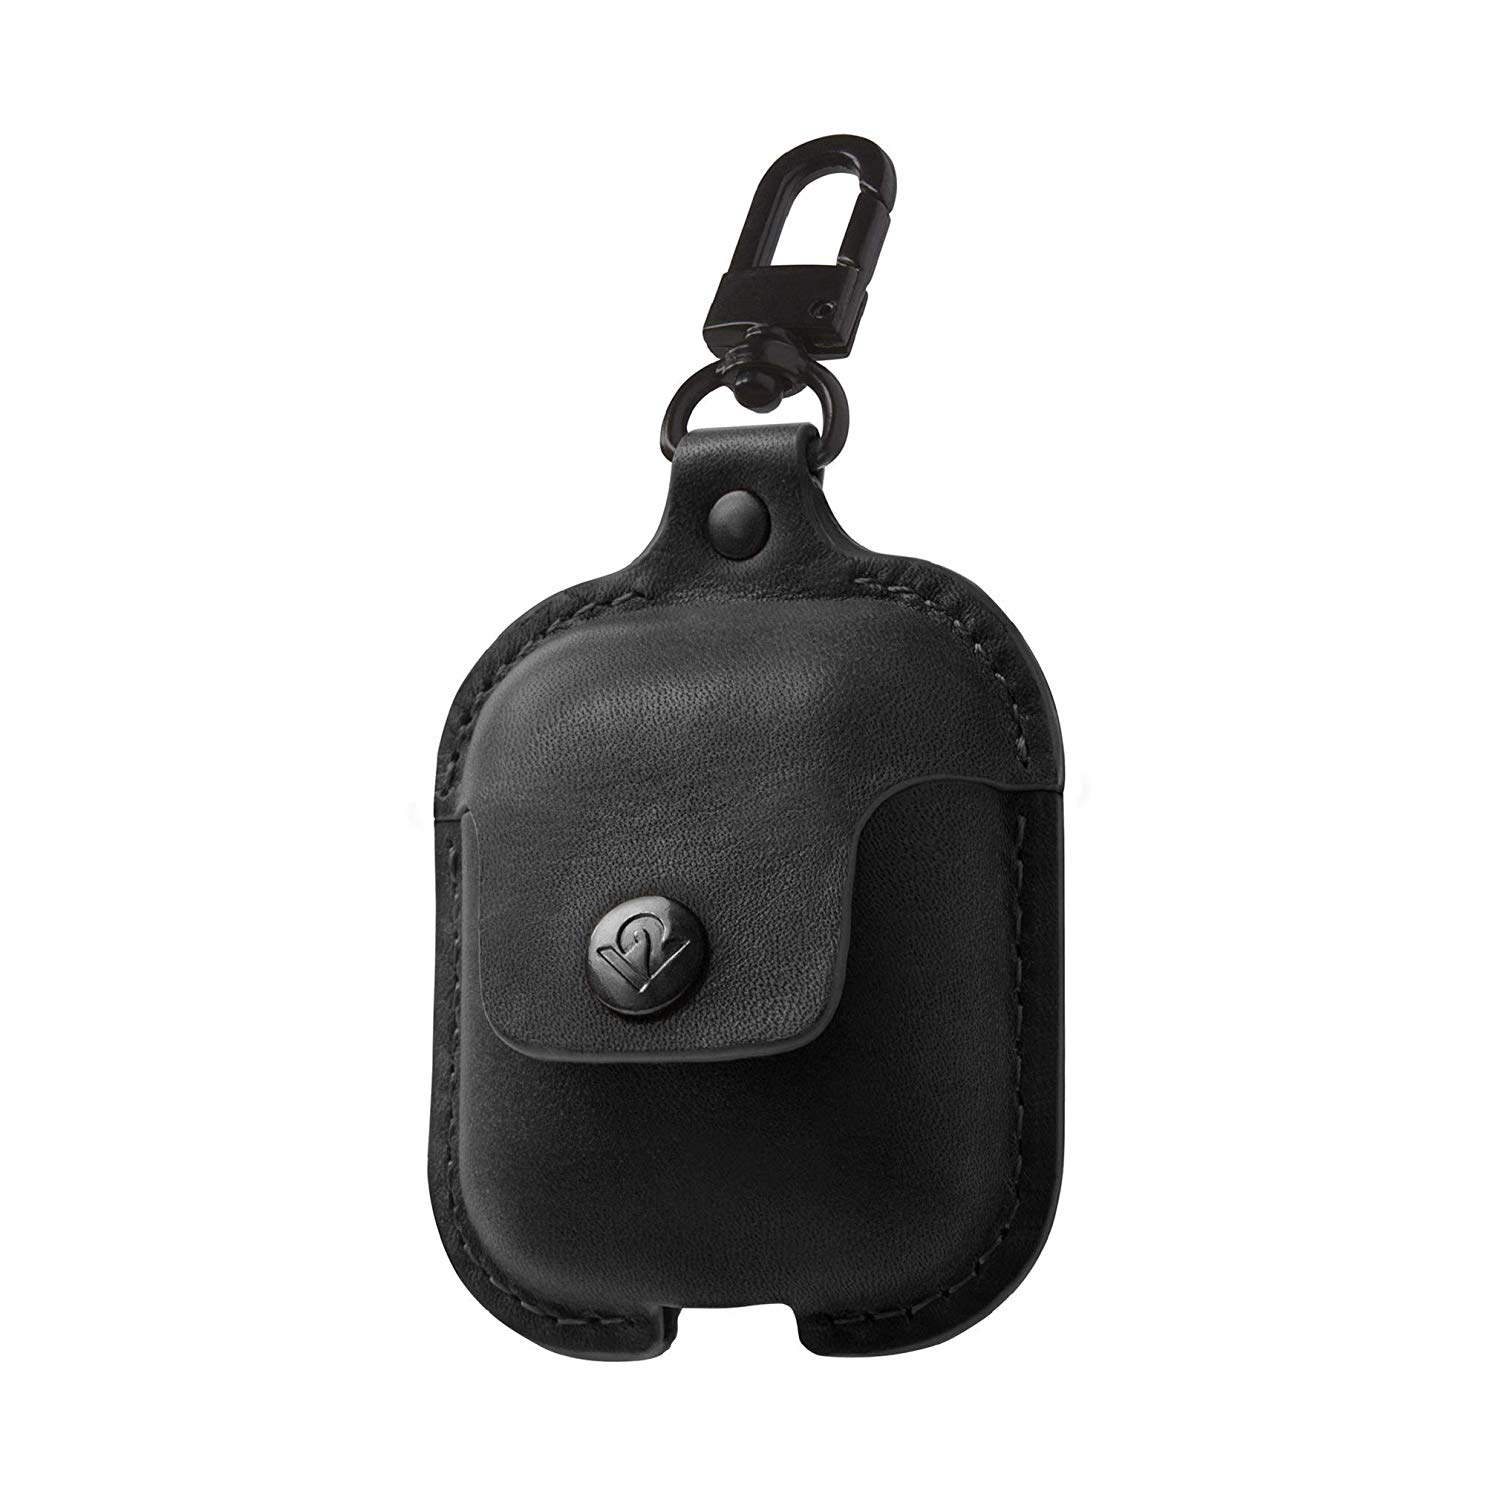 Leather Airpod Case Black